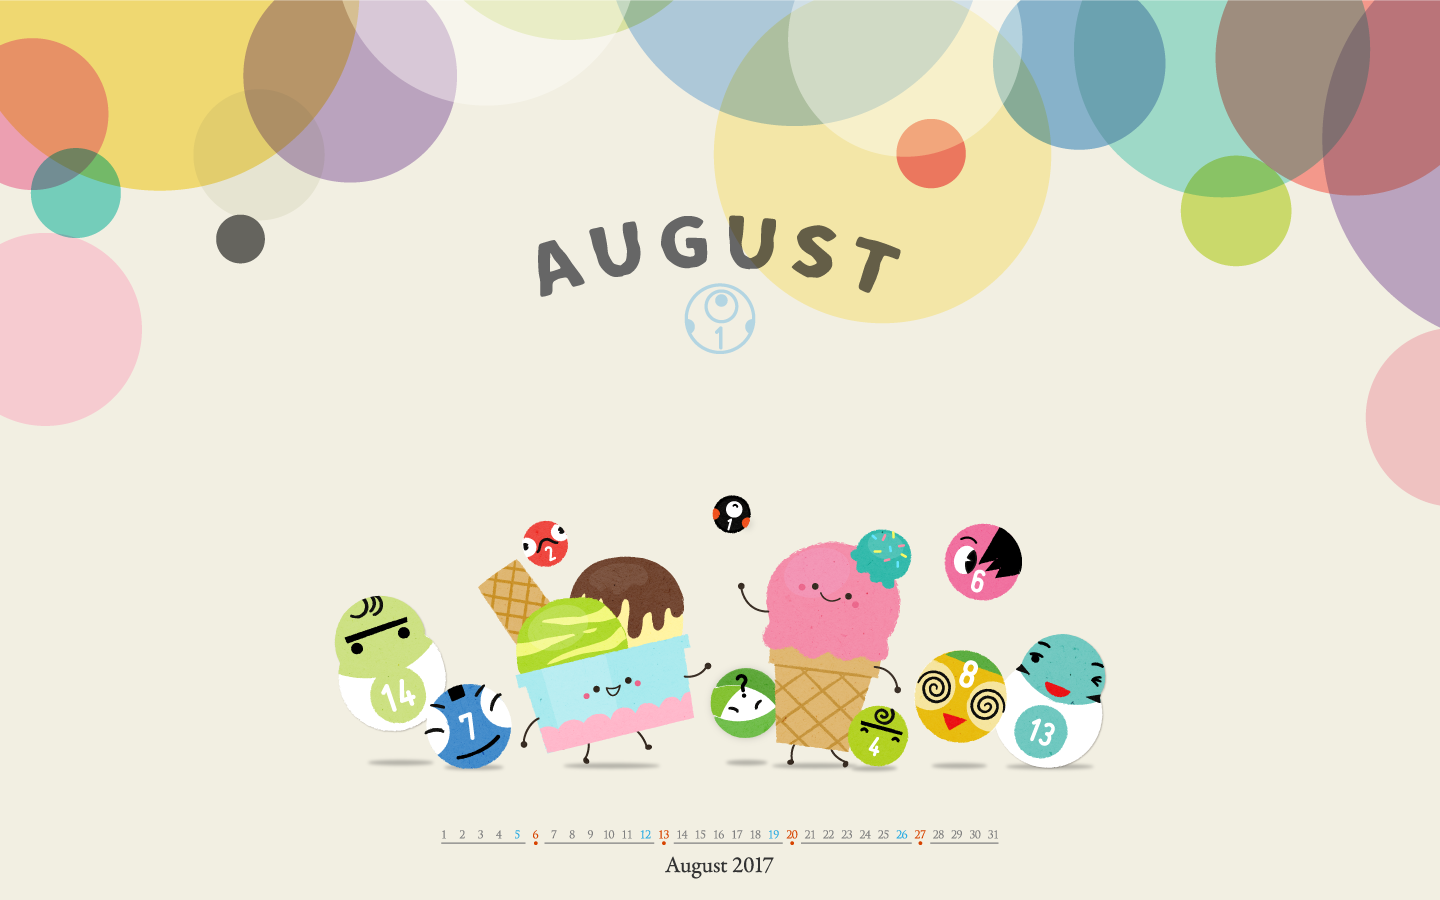 Desktop Calendar Wallpaper for August 2017